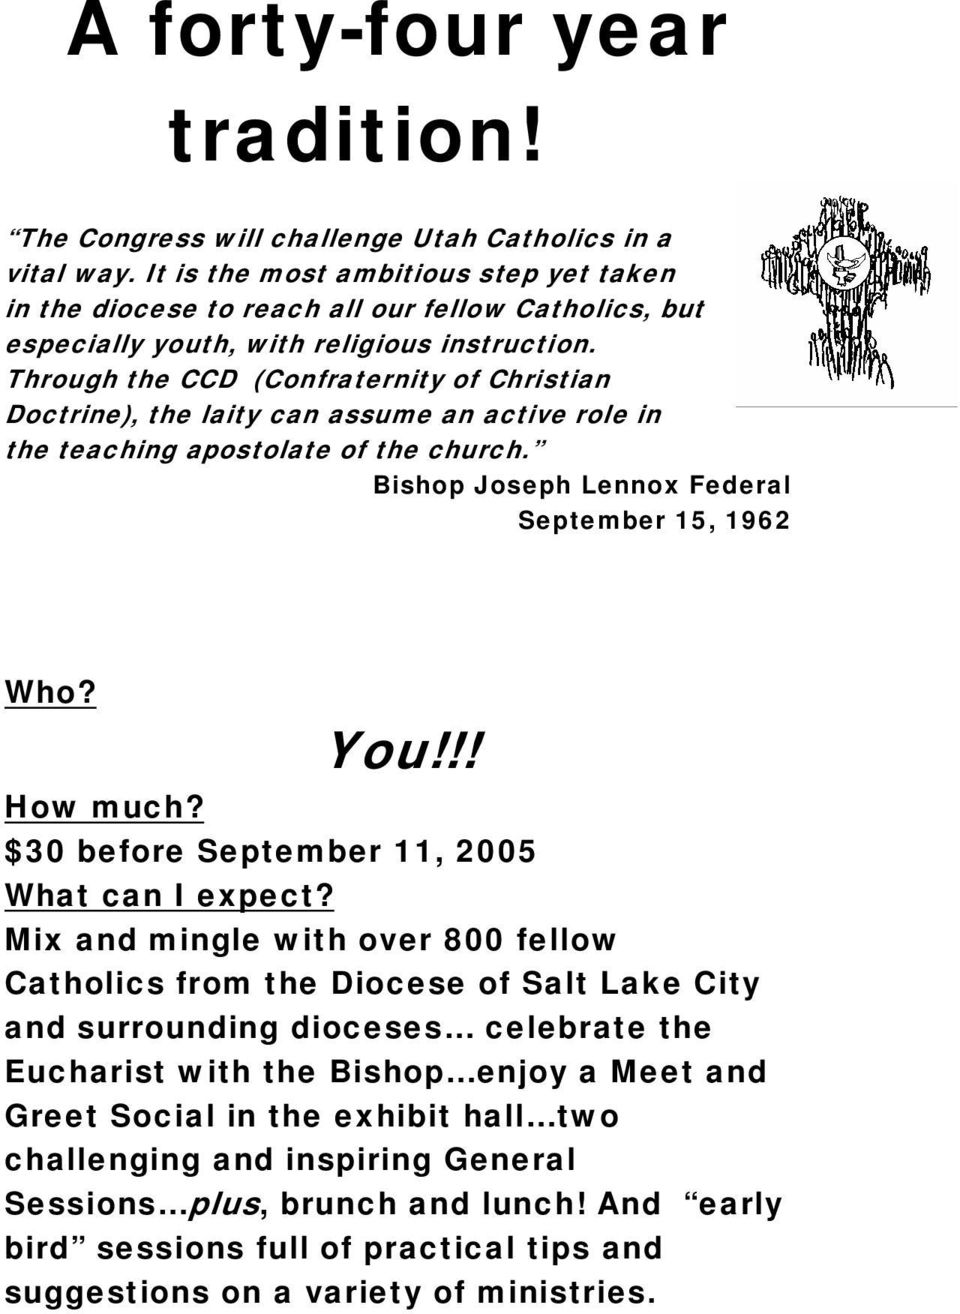 Through the CCD (Confraternity of Christian Doctrine), the laity can assume an active role in the teaching apostolate of the church. Bishop Joseph Lennox Federal September 15, 1962 Who? You!!! How much?